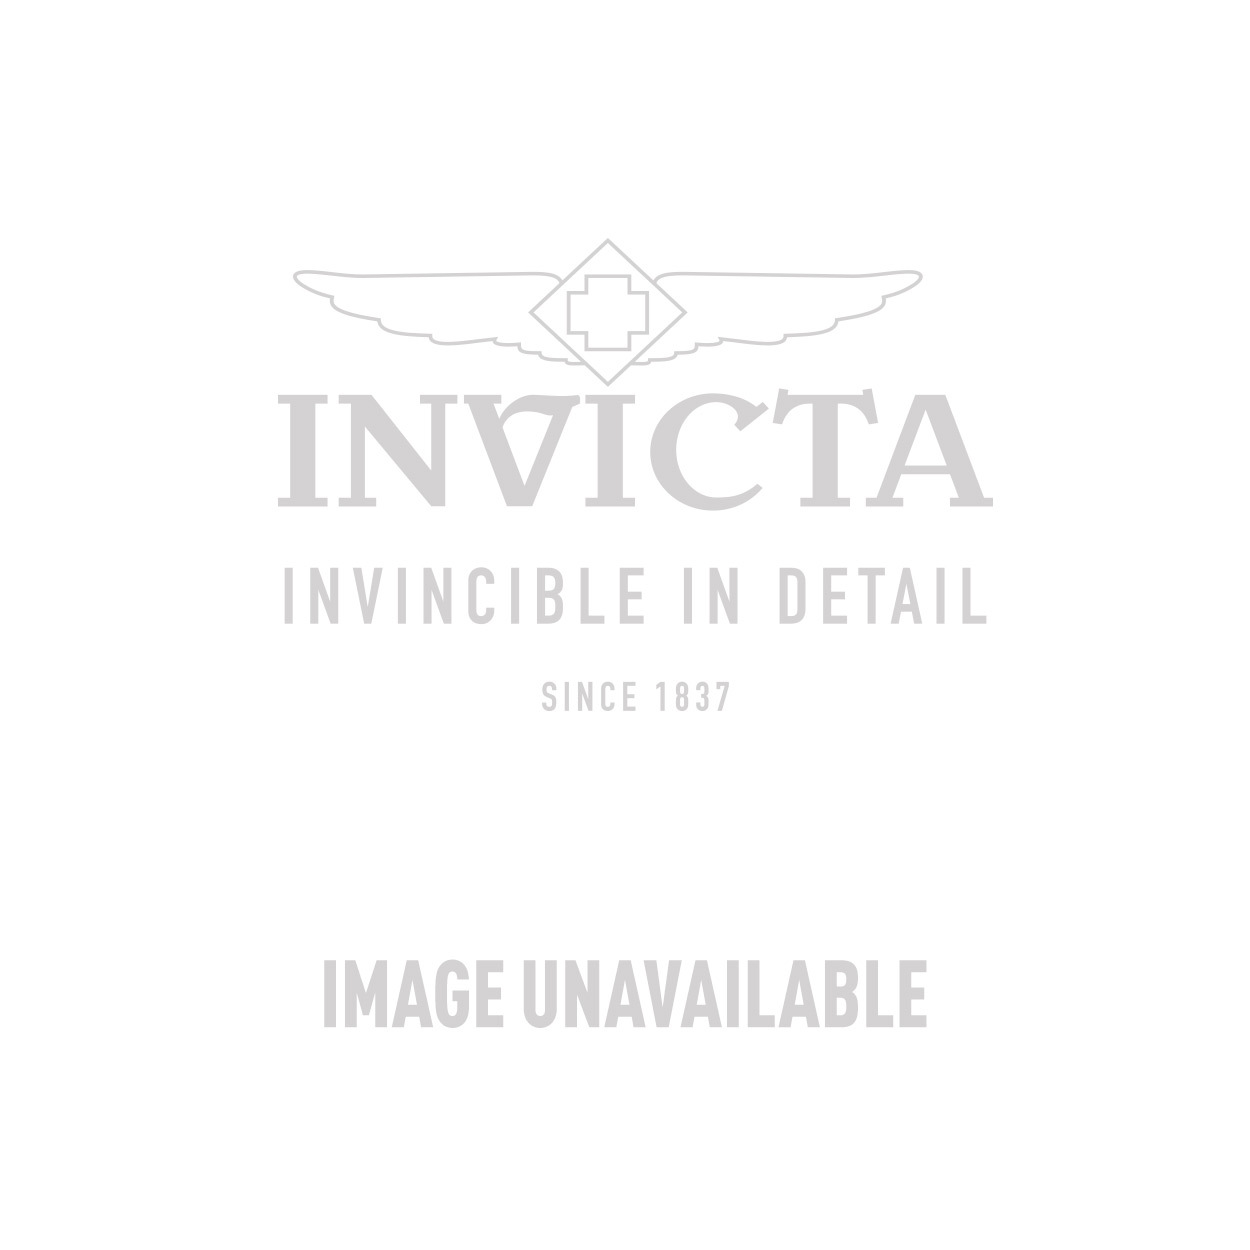 Invicta I-Force Quartz Watch - Stainless Steel case with Black tone Leather band - Model 5459